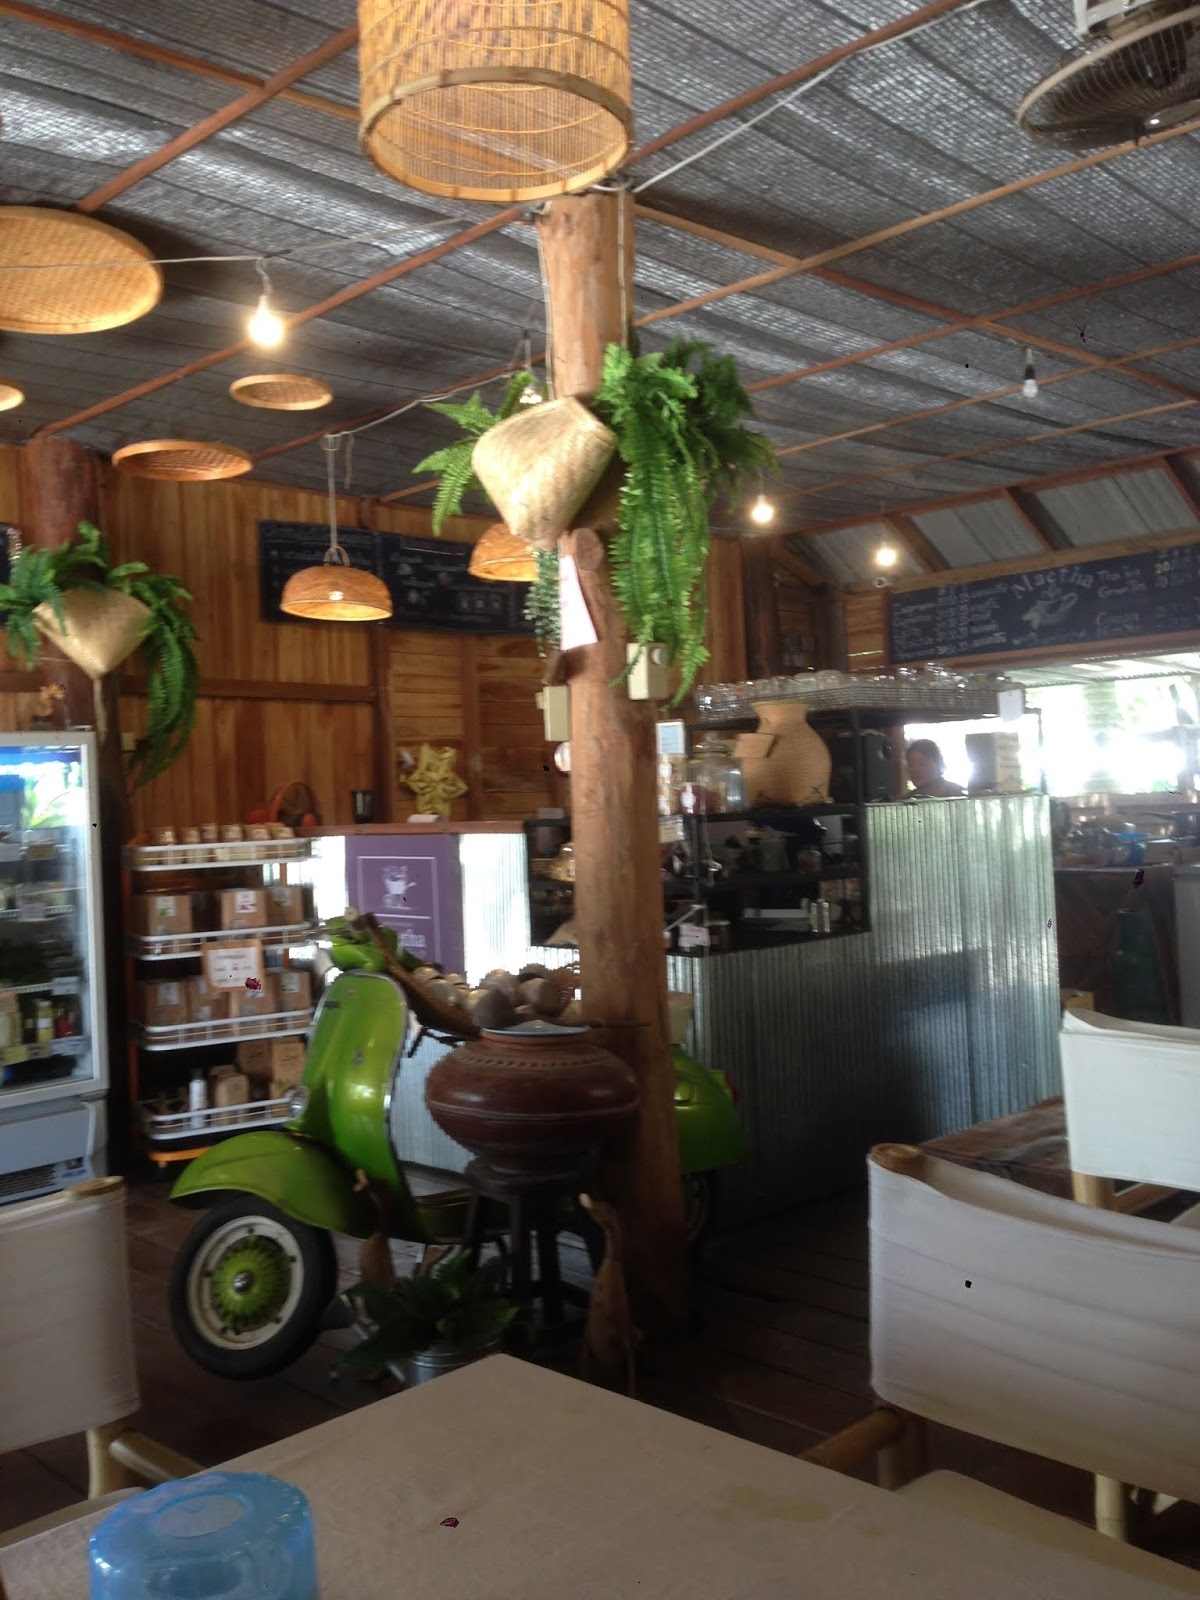 The cooperative's organic cafe